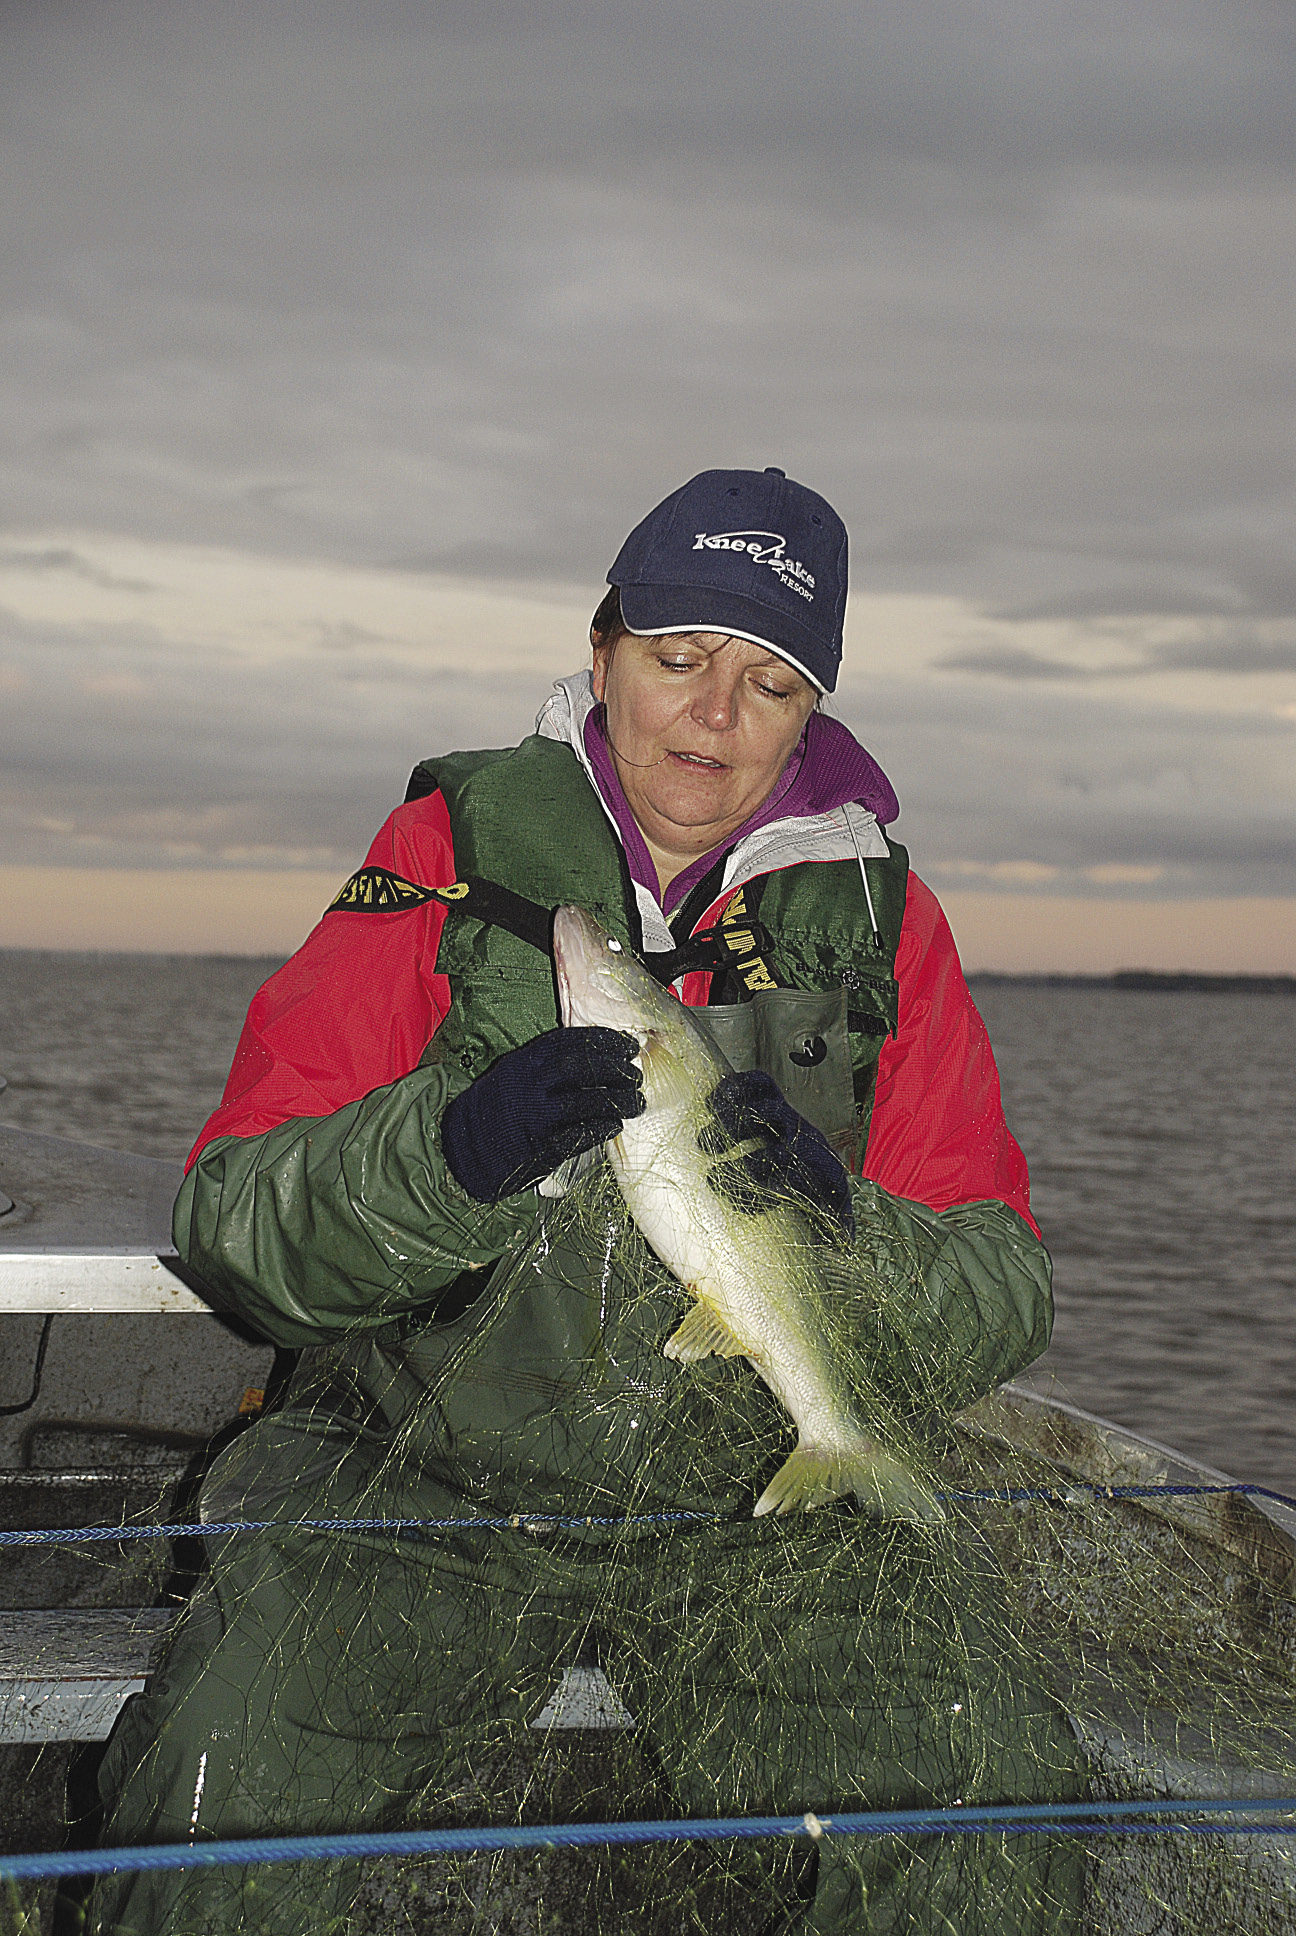 A few years ago, after I wrote about pickerel fishing on Lake Winnipeg, a retired fish biologist contacted me to say that we had actually been fishing for walleye not pickerel. Here's my friend Shel holding her catch. Walleye or pickerel? |ELLE ANDRA-WARNER